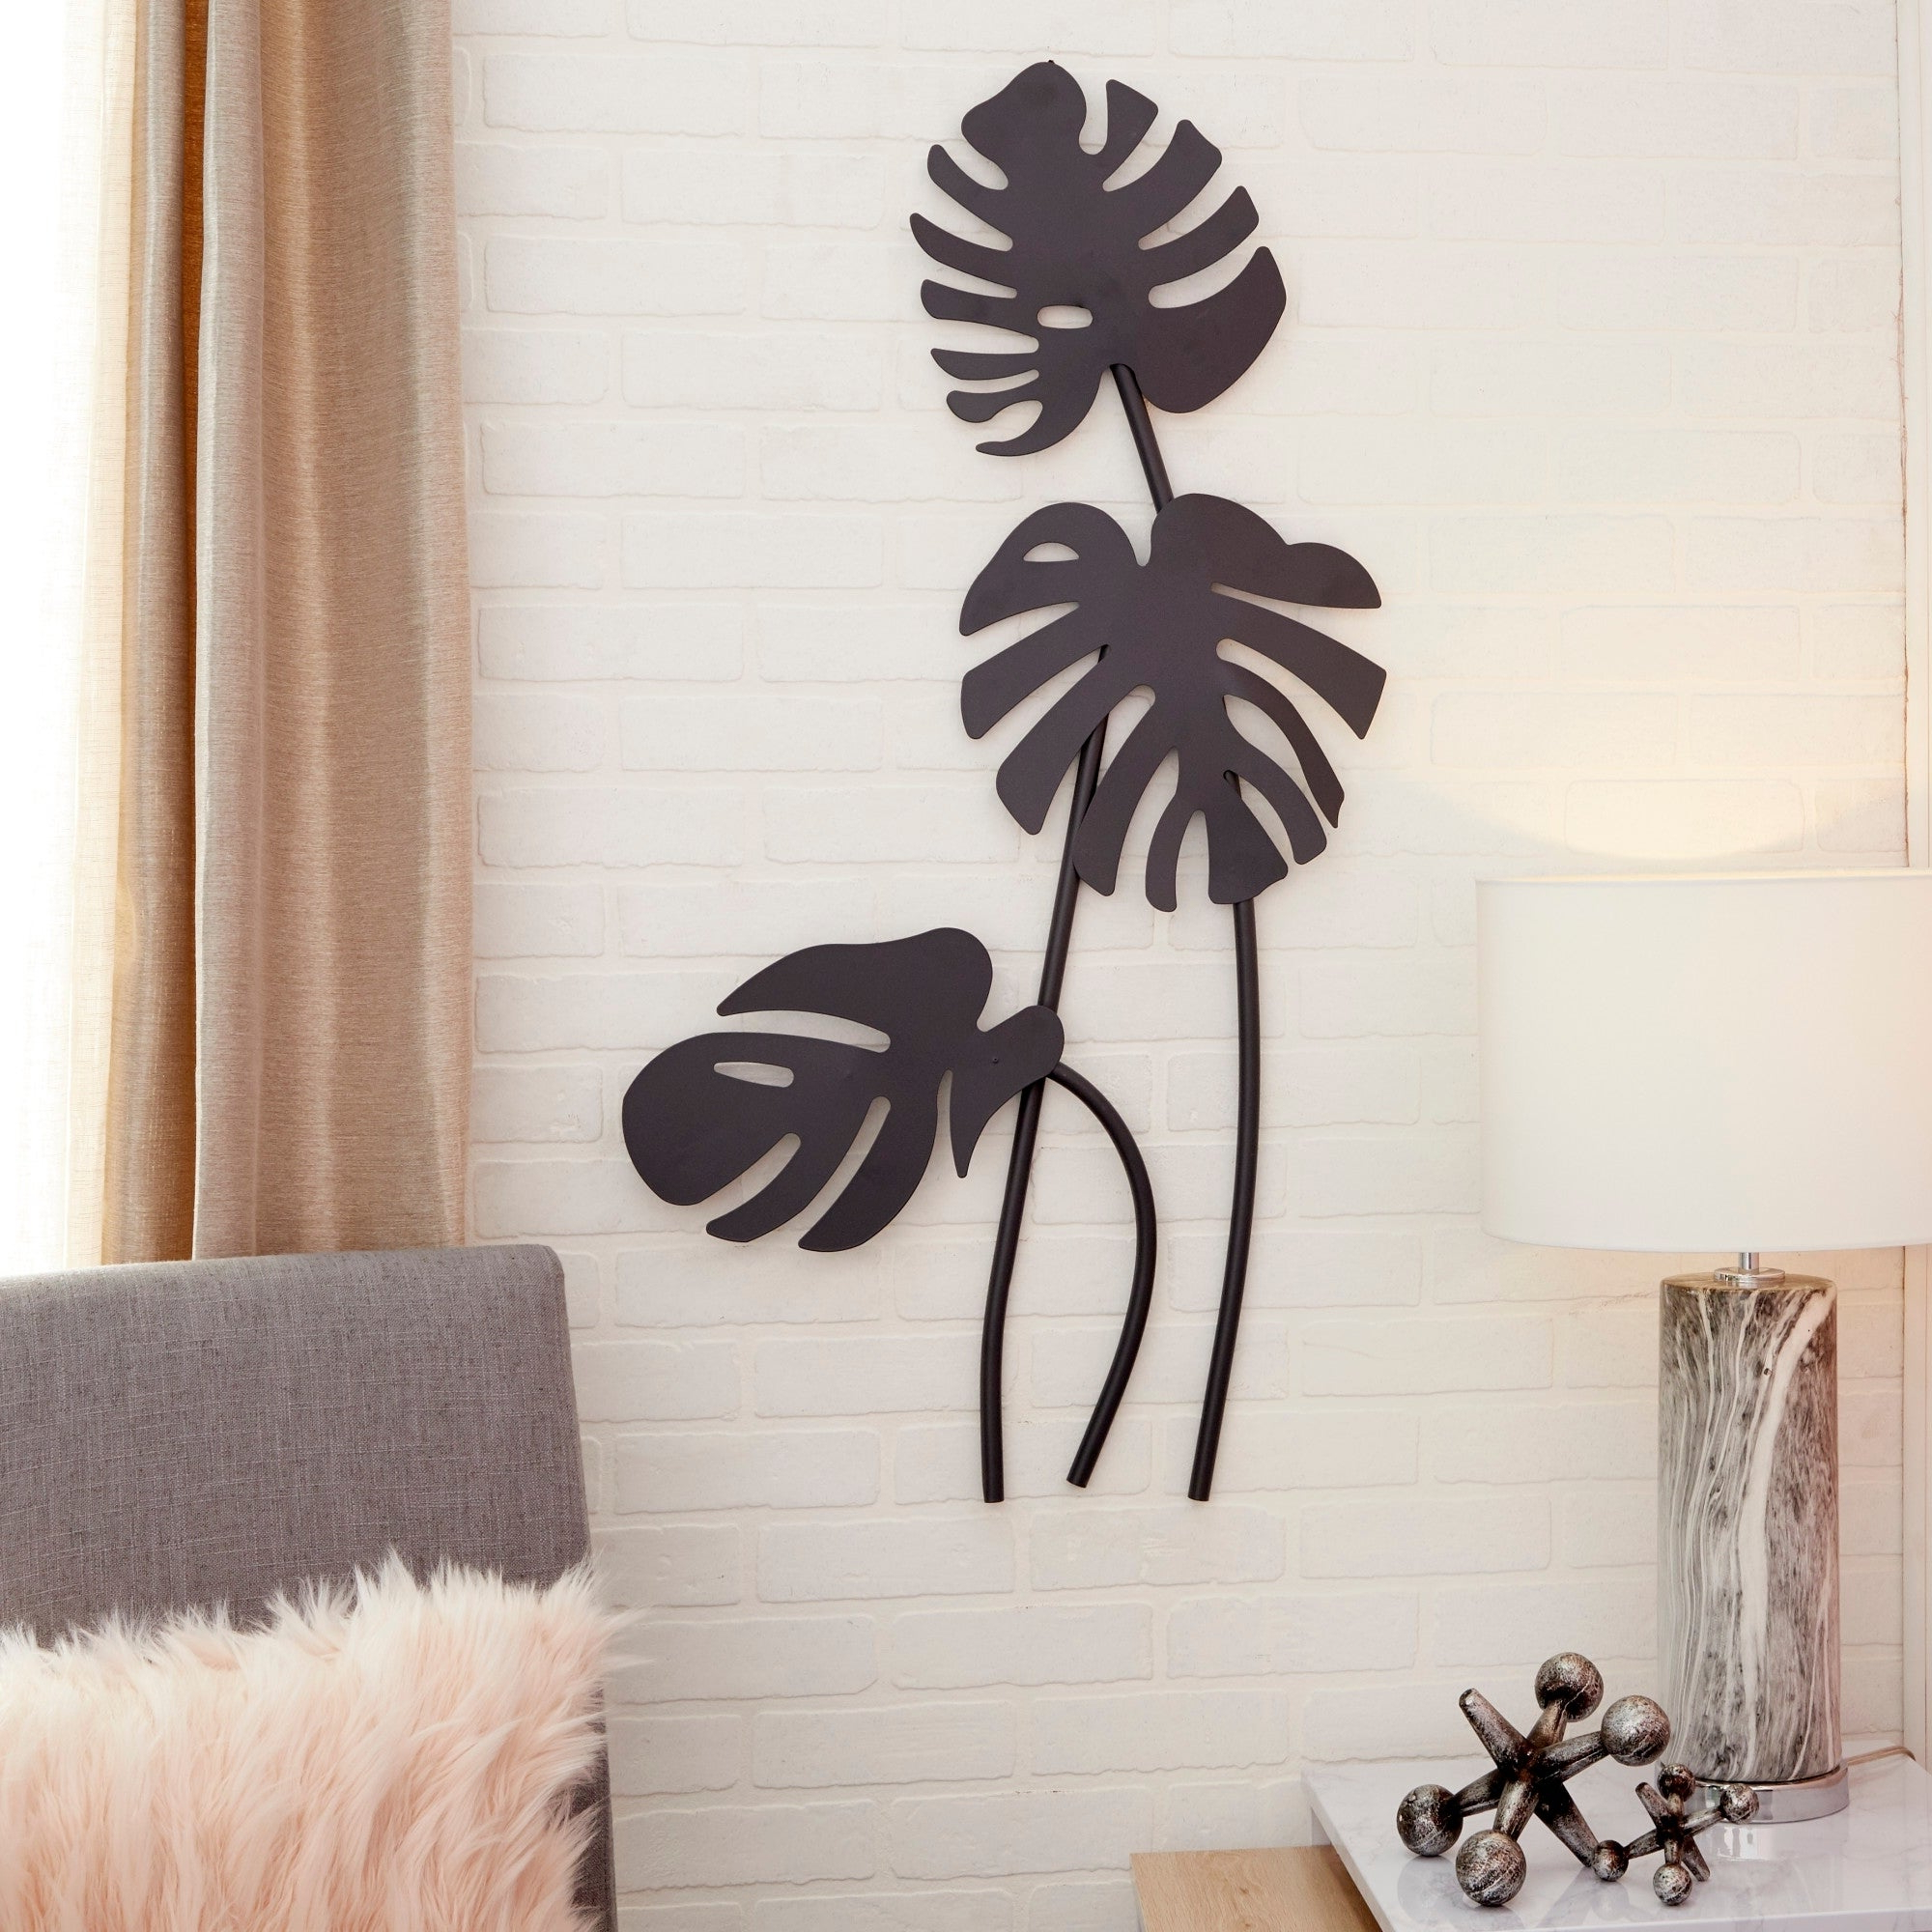 """Leaves Metal Sculpture Wall Decor Pertaining To Favorite Shop Large Black Palm Leaf Sculptures Metal Wall Decor 21"""" X  (View 7 of 20)"""